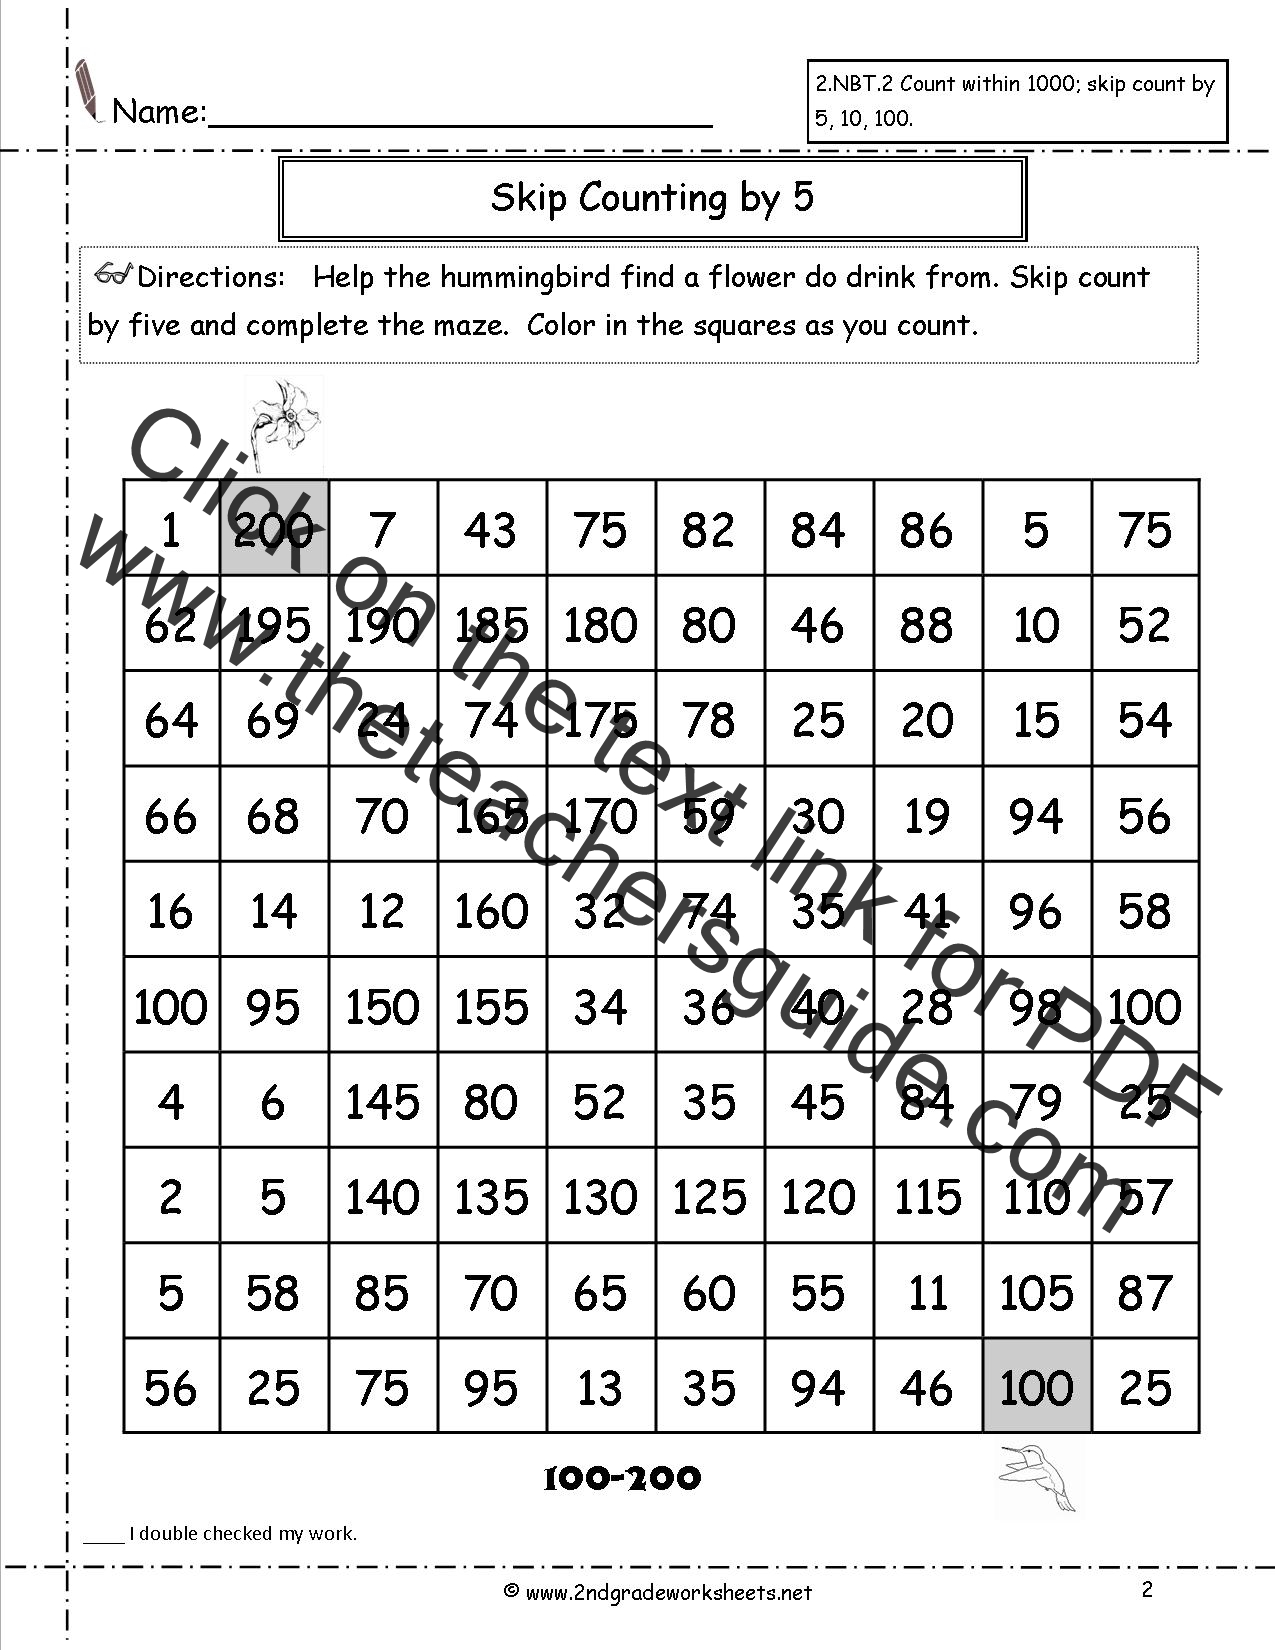 Worksheet Skip Counting Free Worksheets free skip counting worksheets count by 5 maze